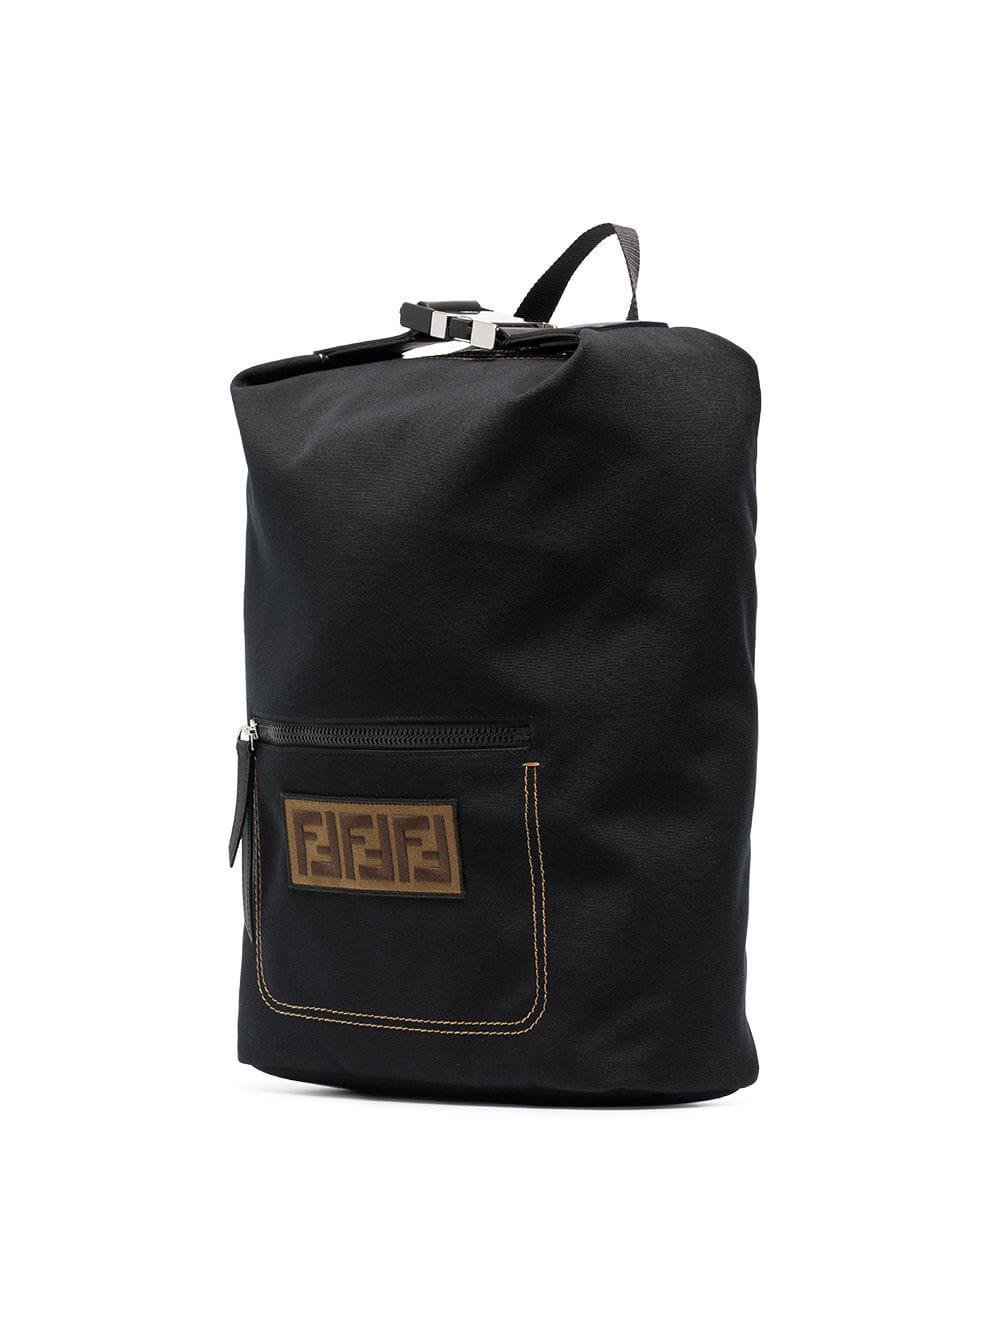 Fendi - Black Logo Embroidered Buckle Backpack for Men - Lyst. View  fullscreen bec67088835a7